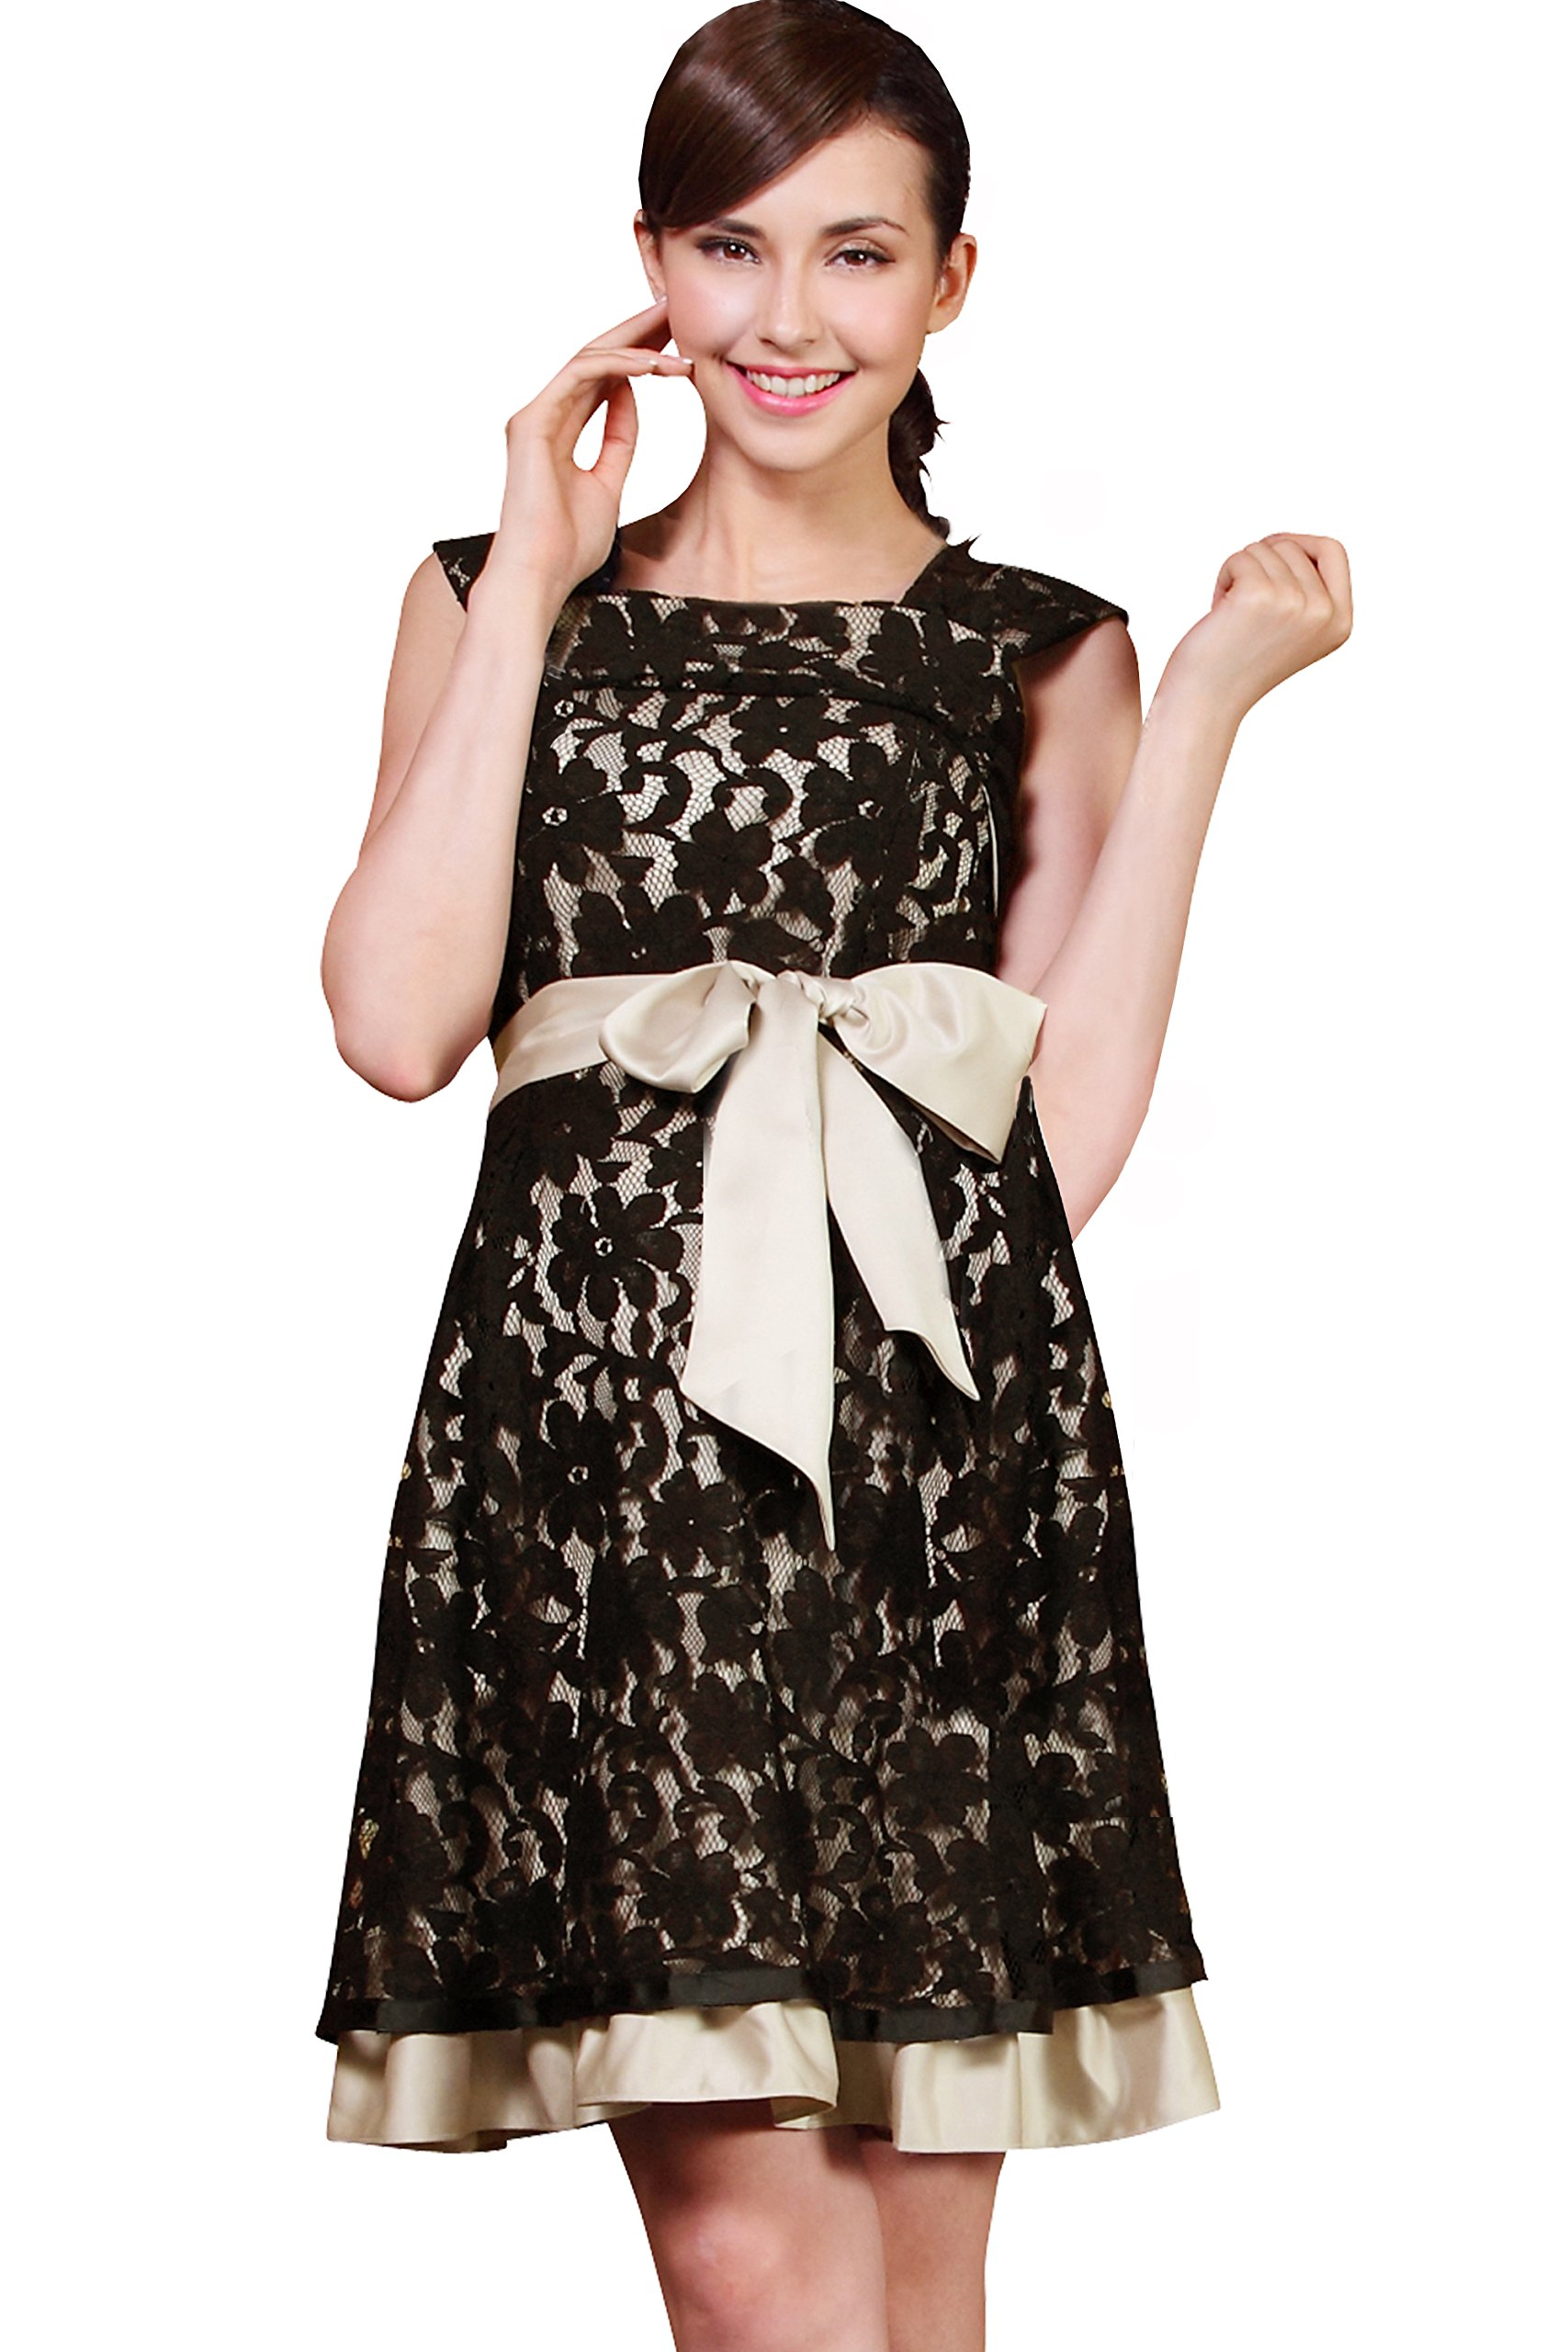 Sweet Mommy Layered Lace Maternity and Nursing Formal Dress Black, L